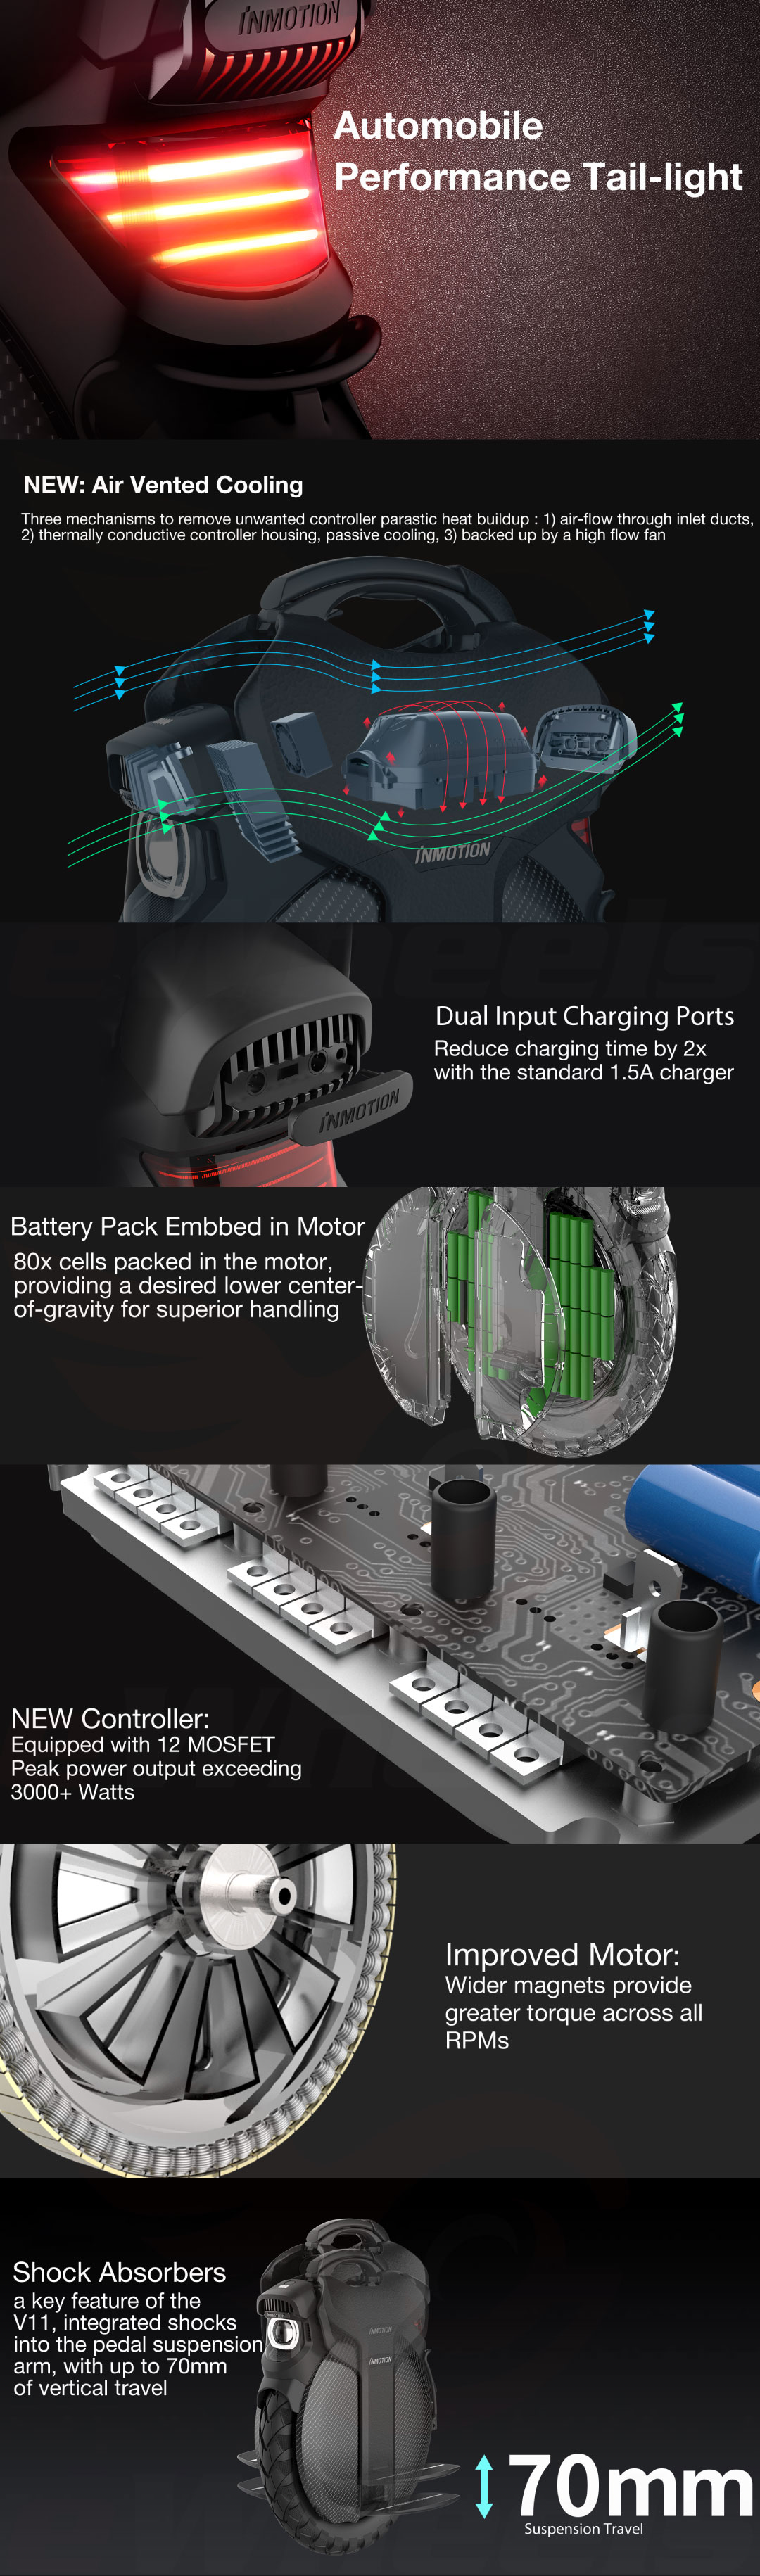 Inmotion V11 New Product Features, Page 2